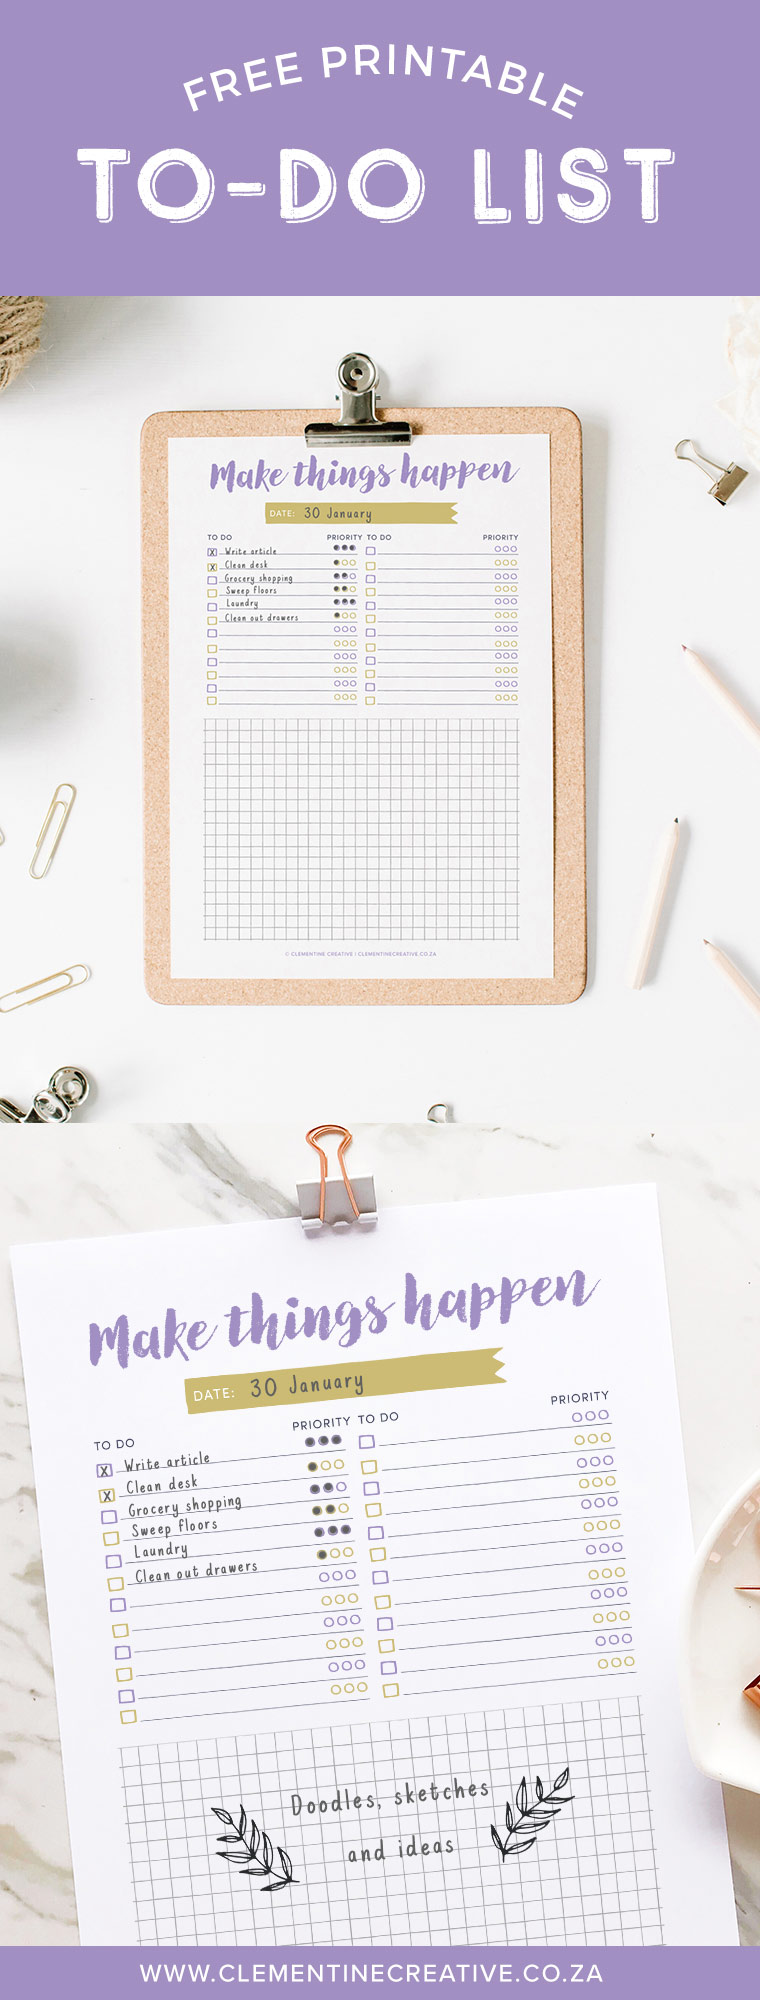 picture about Free Printable Daily to Do List named Adorable Totally free Printable In the direction of-do Checklist with area for doodles